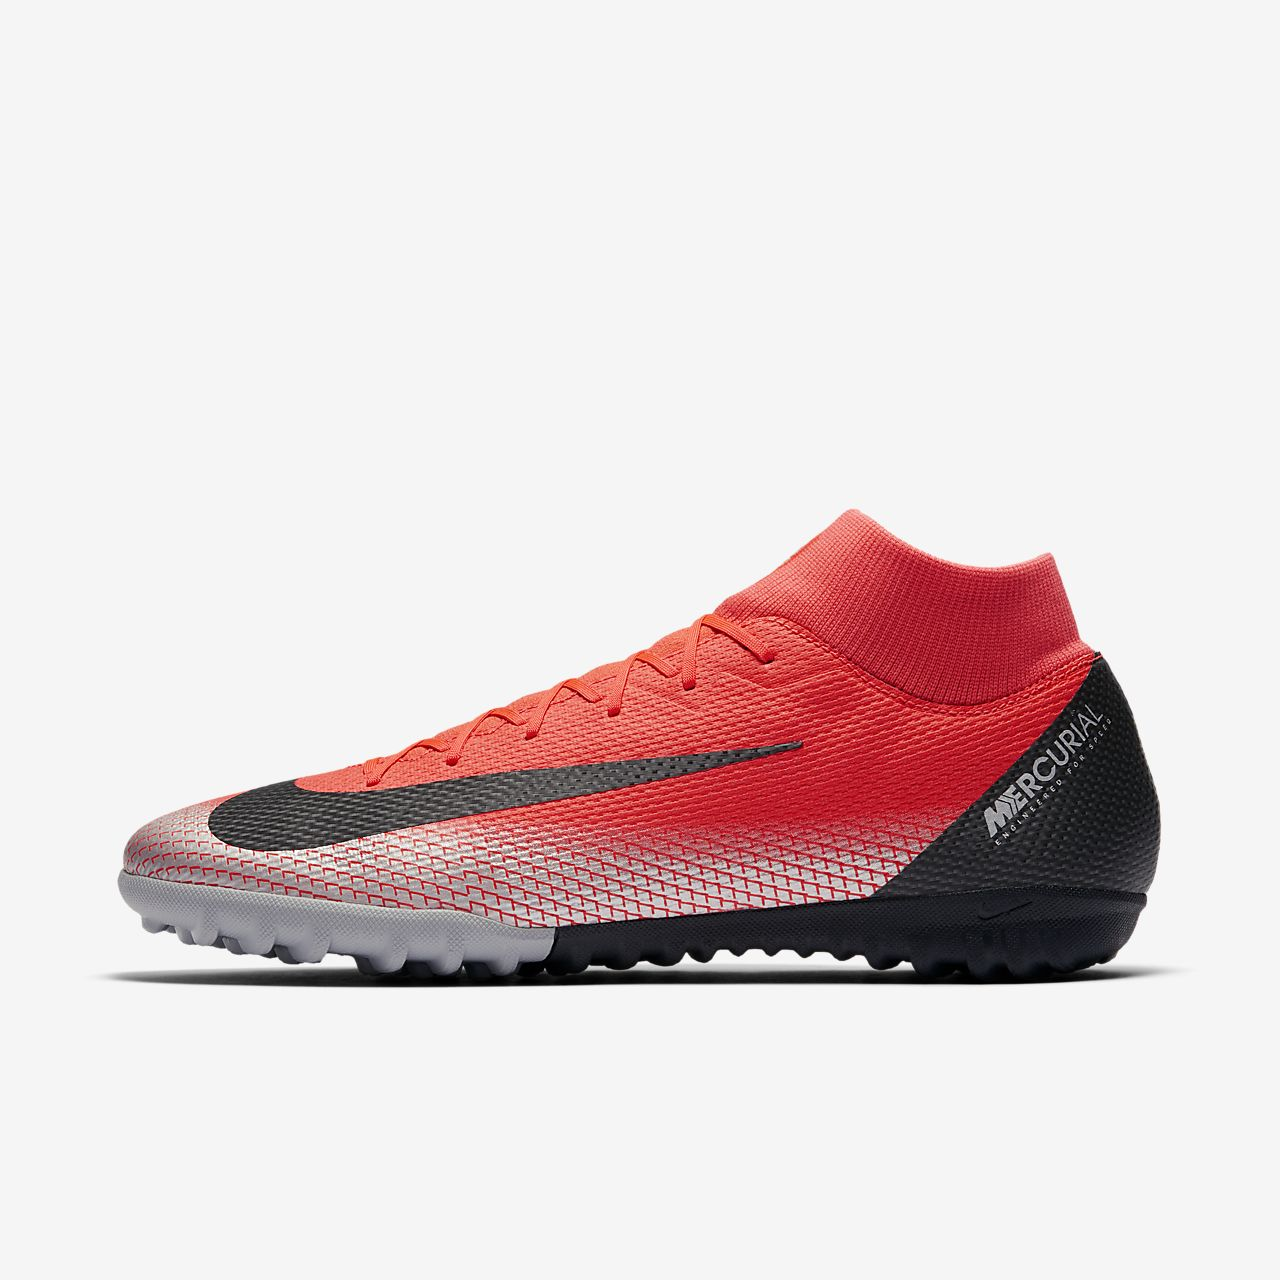 13c1e7d3a311 CR7 SuperflyX 6 Academy Artificial-Turf Football Boot. Nike.com IE